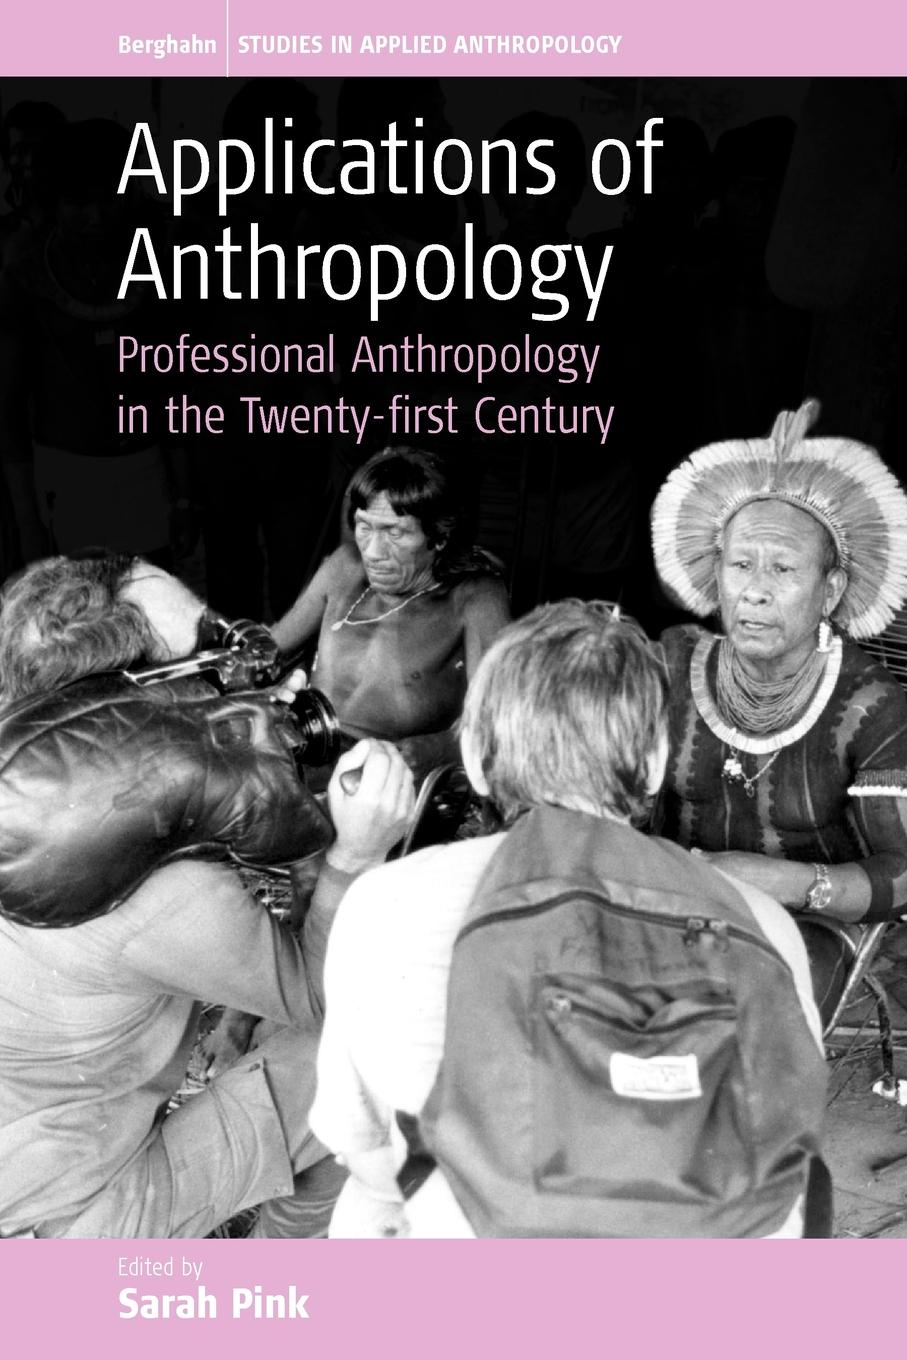 Applications of Anthropology. Professional Anthropology in the Twenty-First Century jeremy macclancy anthropology in the public arena historical and contemporary contexts